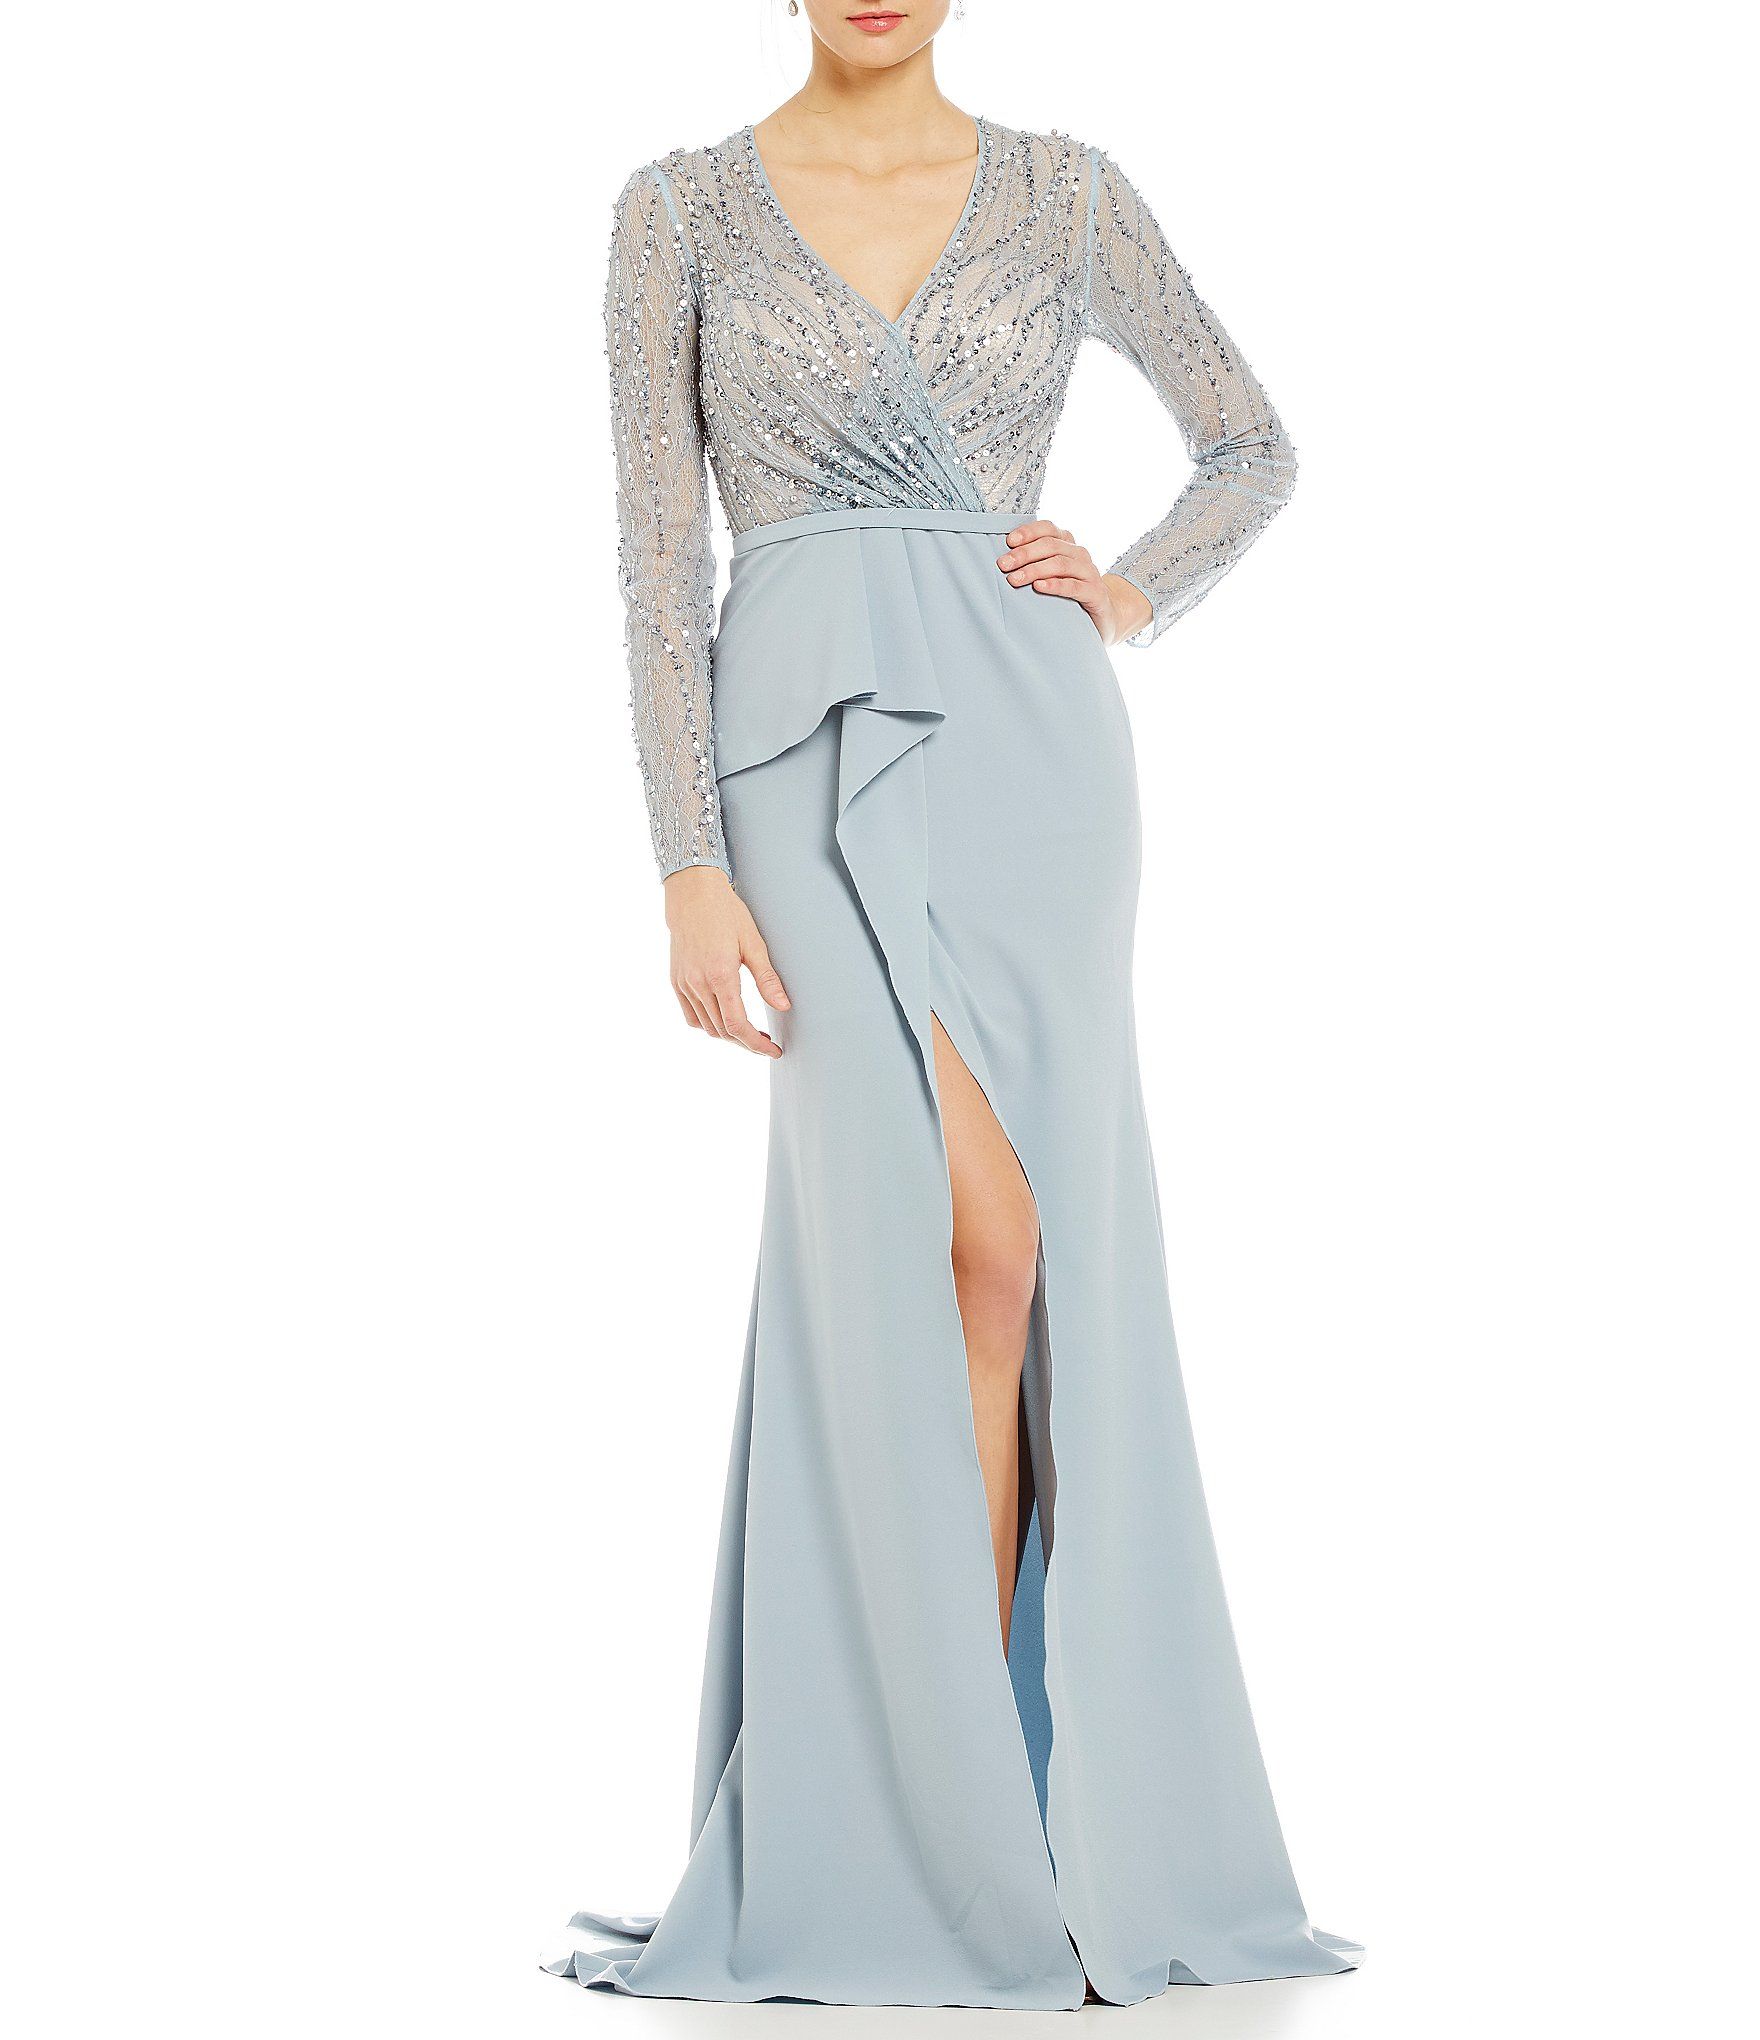 Women\'s Long-Sleeve Formal Dresses & Gowns | Dillards